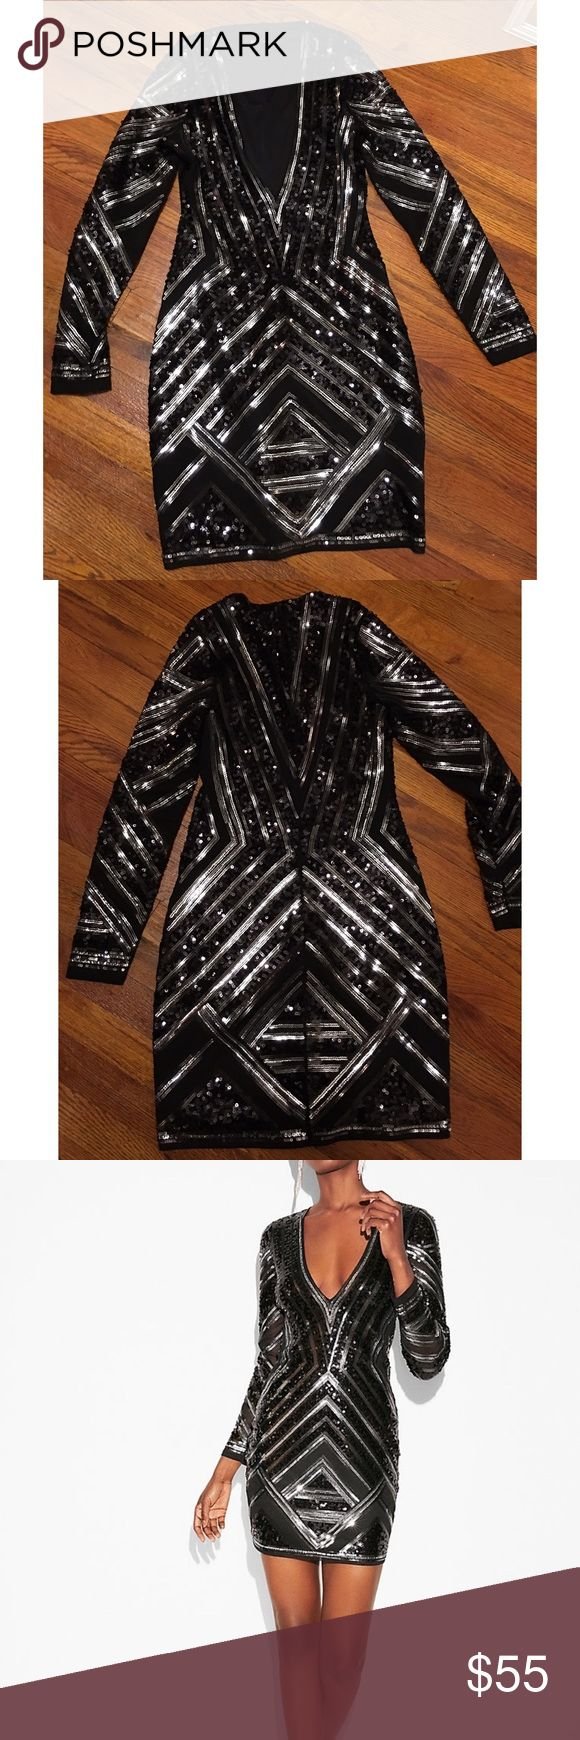 Express Long Sleeve Black & Silver Sequin Dress Super Sexy Long sleeve dress from Express.  Black and silver Sequins with black Mesh.  Size XS. Worn once. Express Dresses Mini